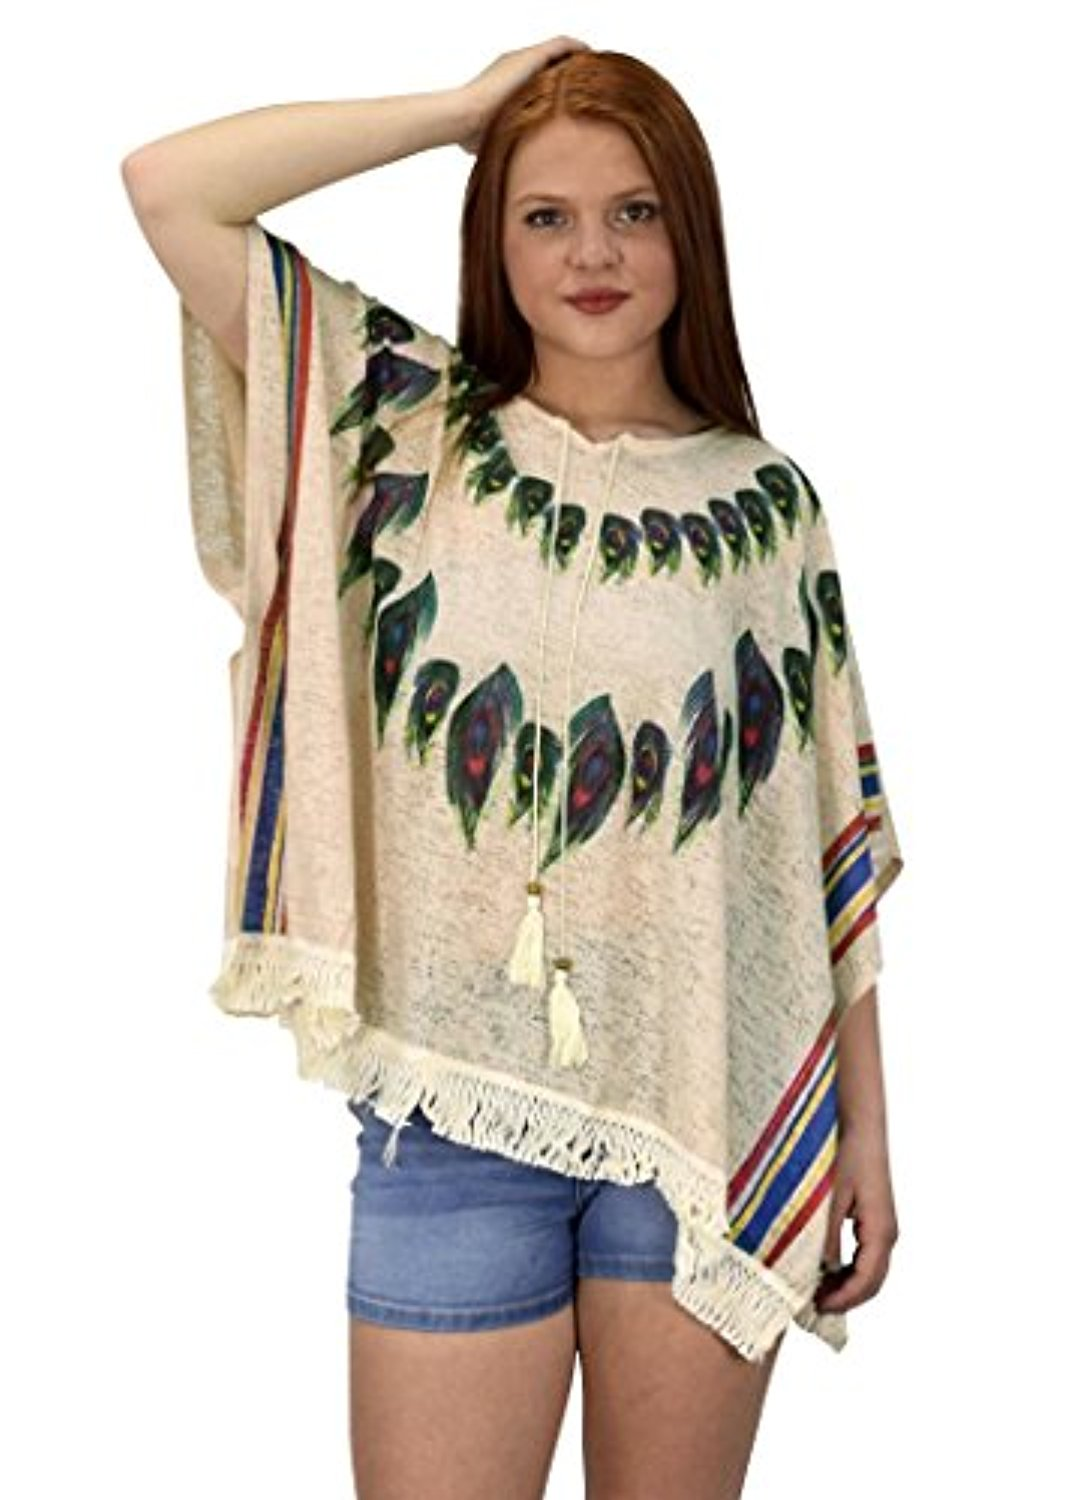 Click here to buy Peach Couture Womens Peacock Light weight Summer Poncho Cardigan Cover Up Beige by Overstock.